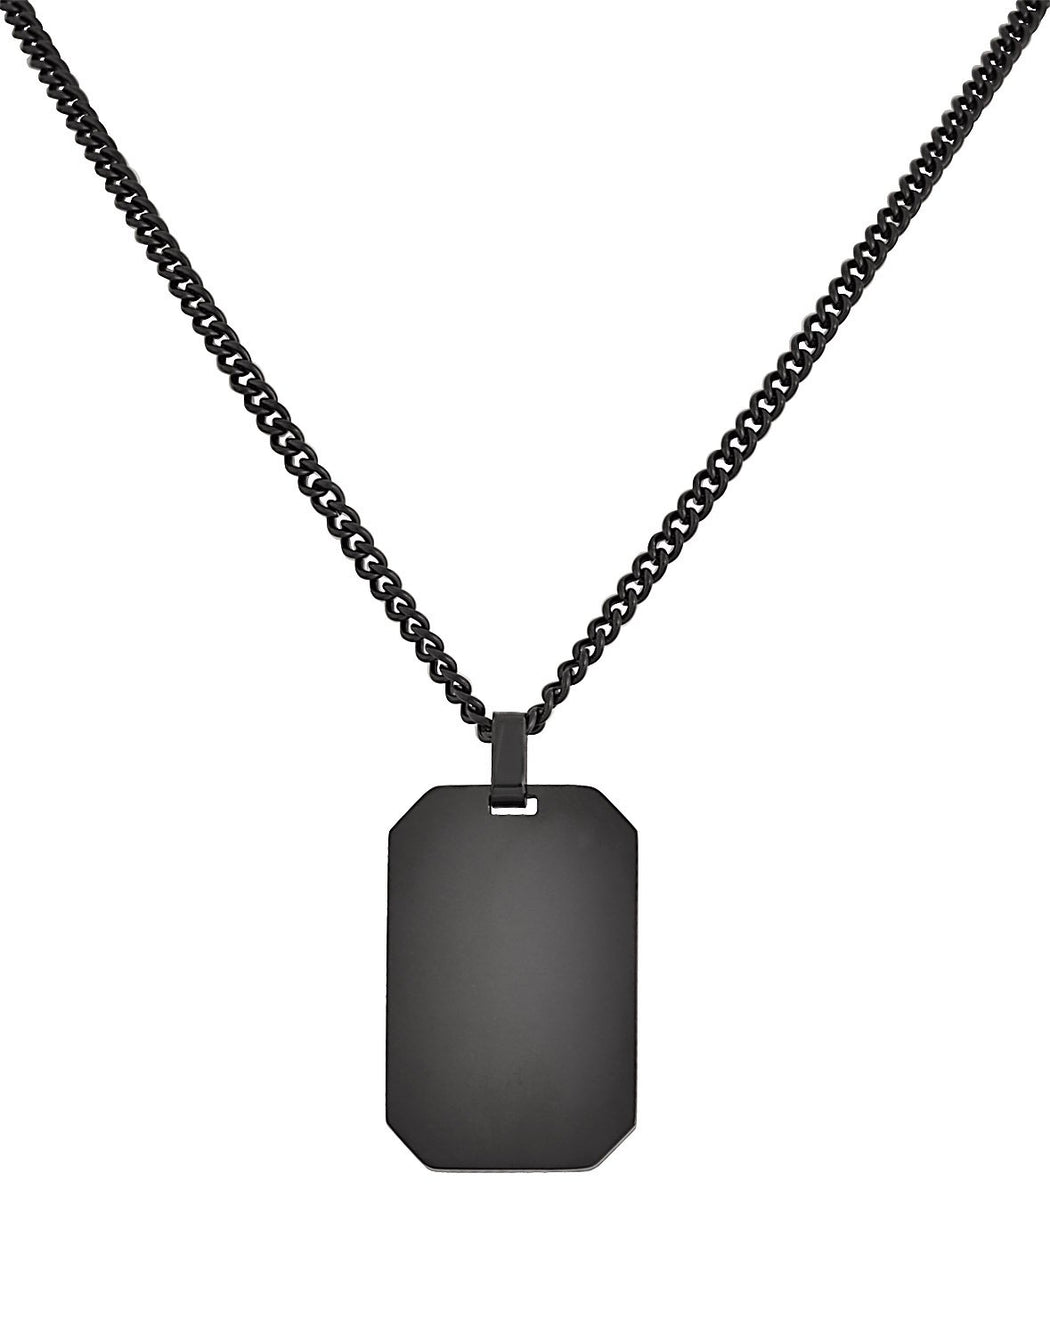 BlackDog Tag Pendant Necklace Feature img full length